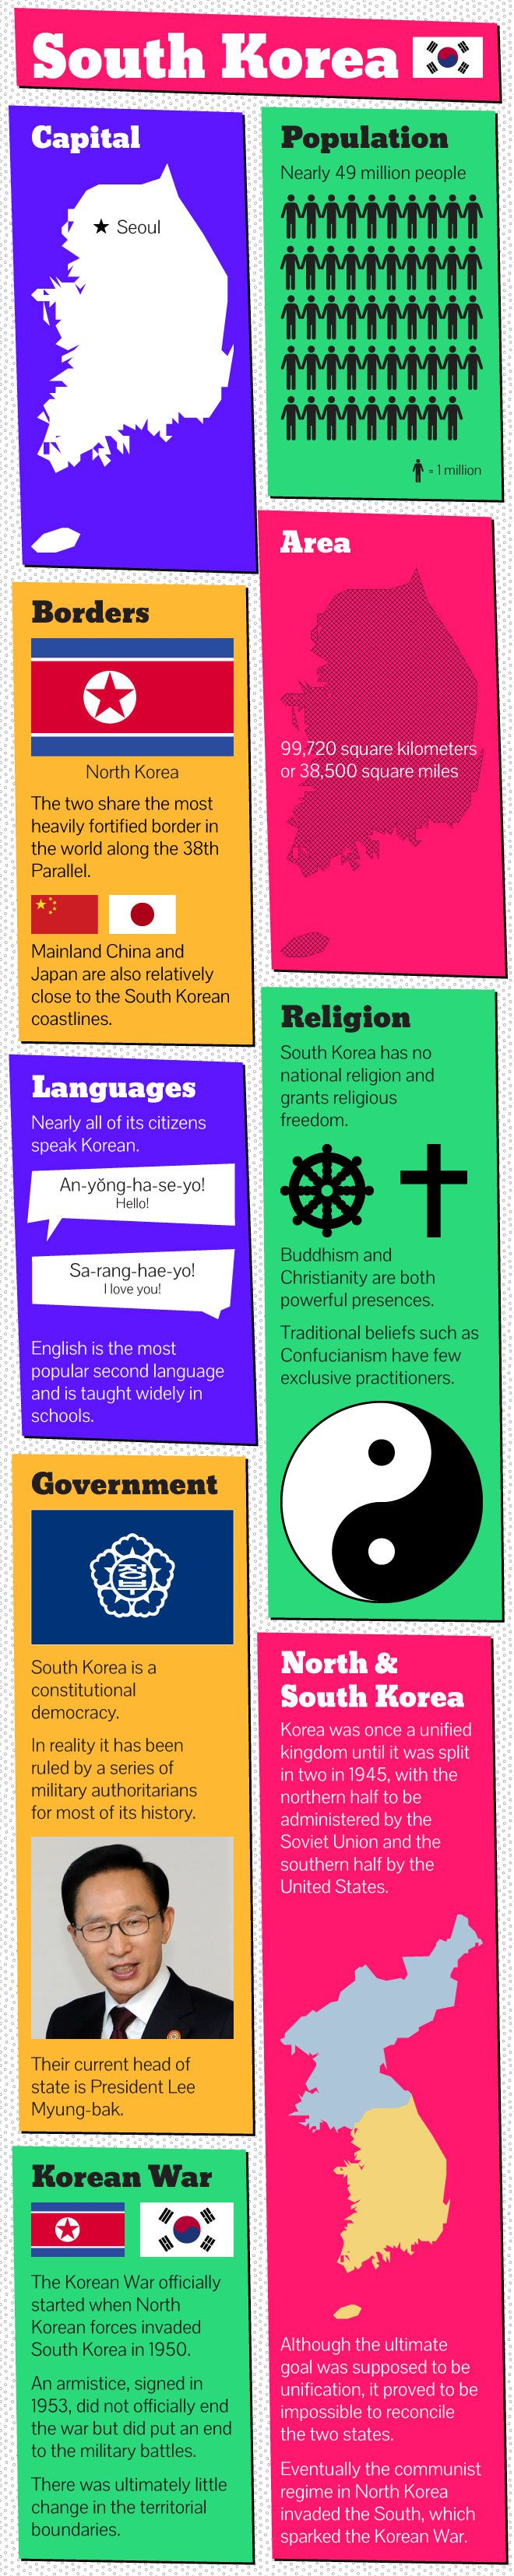 #Infographic of  South Korea Fast #Facts http://www.mapsofworld.com/pages/fast-facts/infographic-of-south-korea-fast-facts/